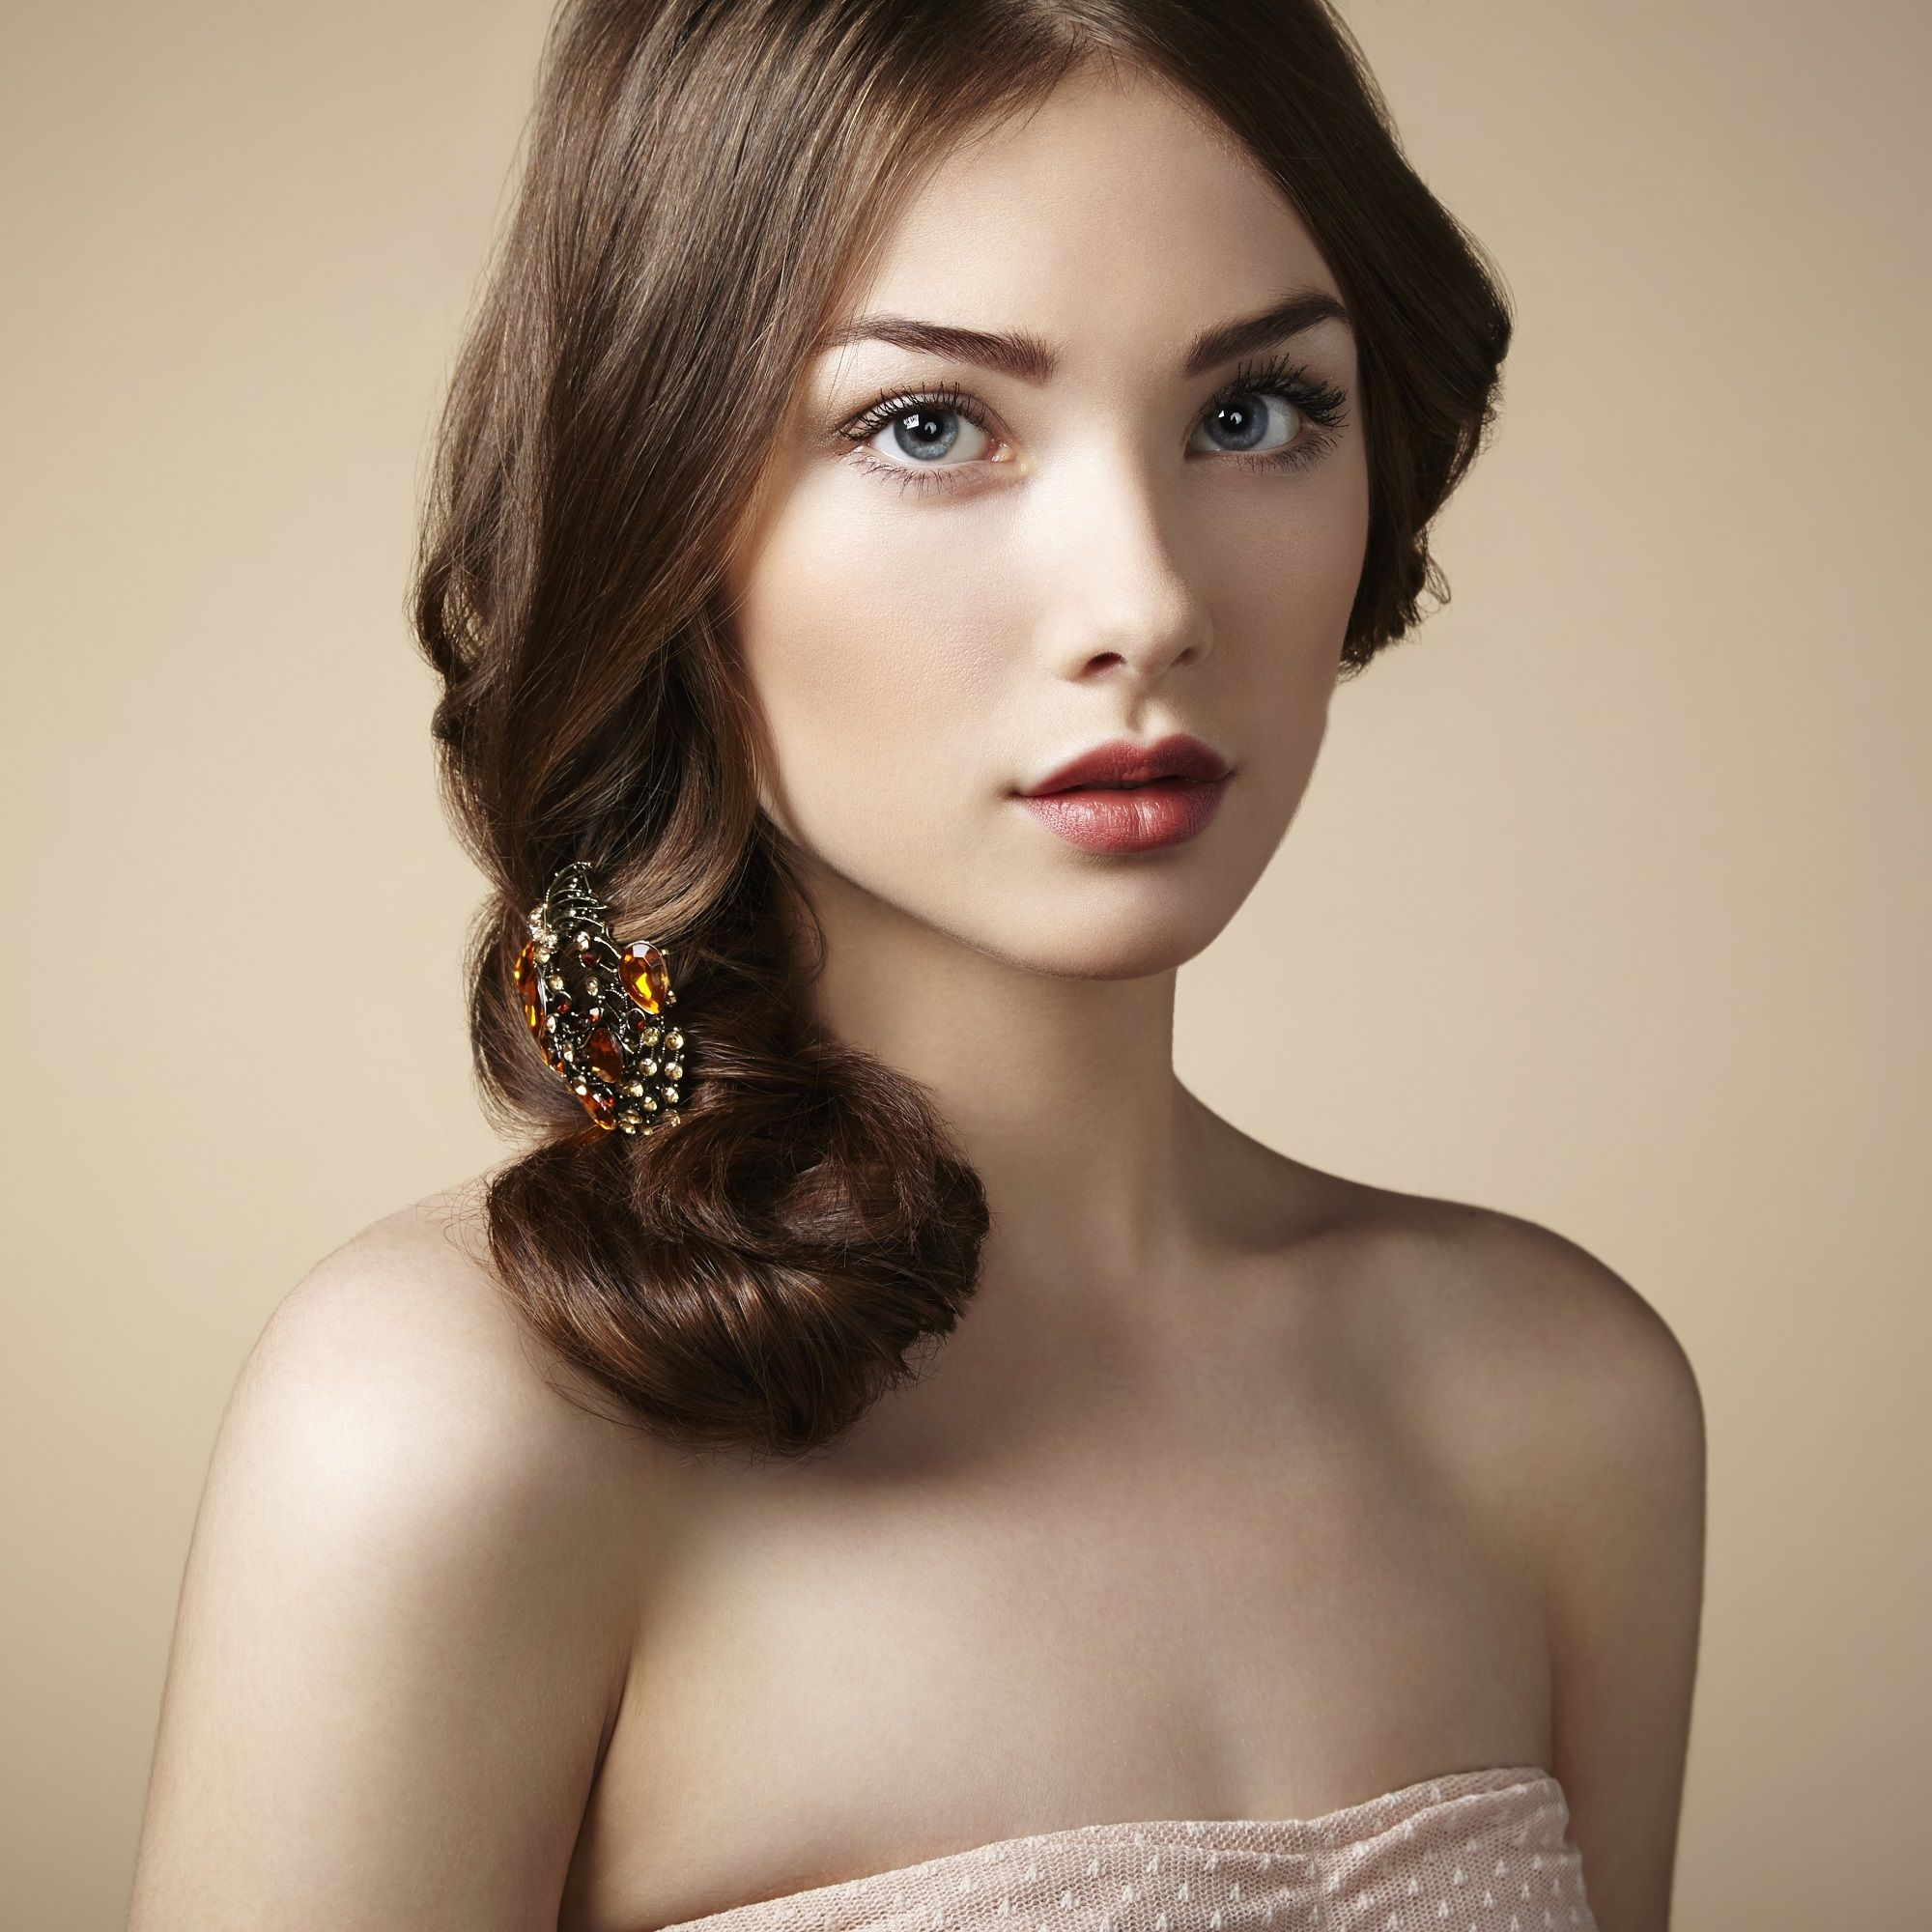 Woman with a side bun hairstyle and ash brown hair color